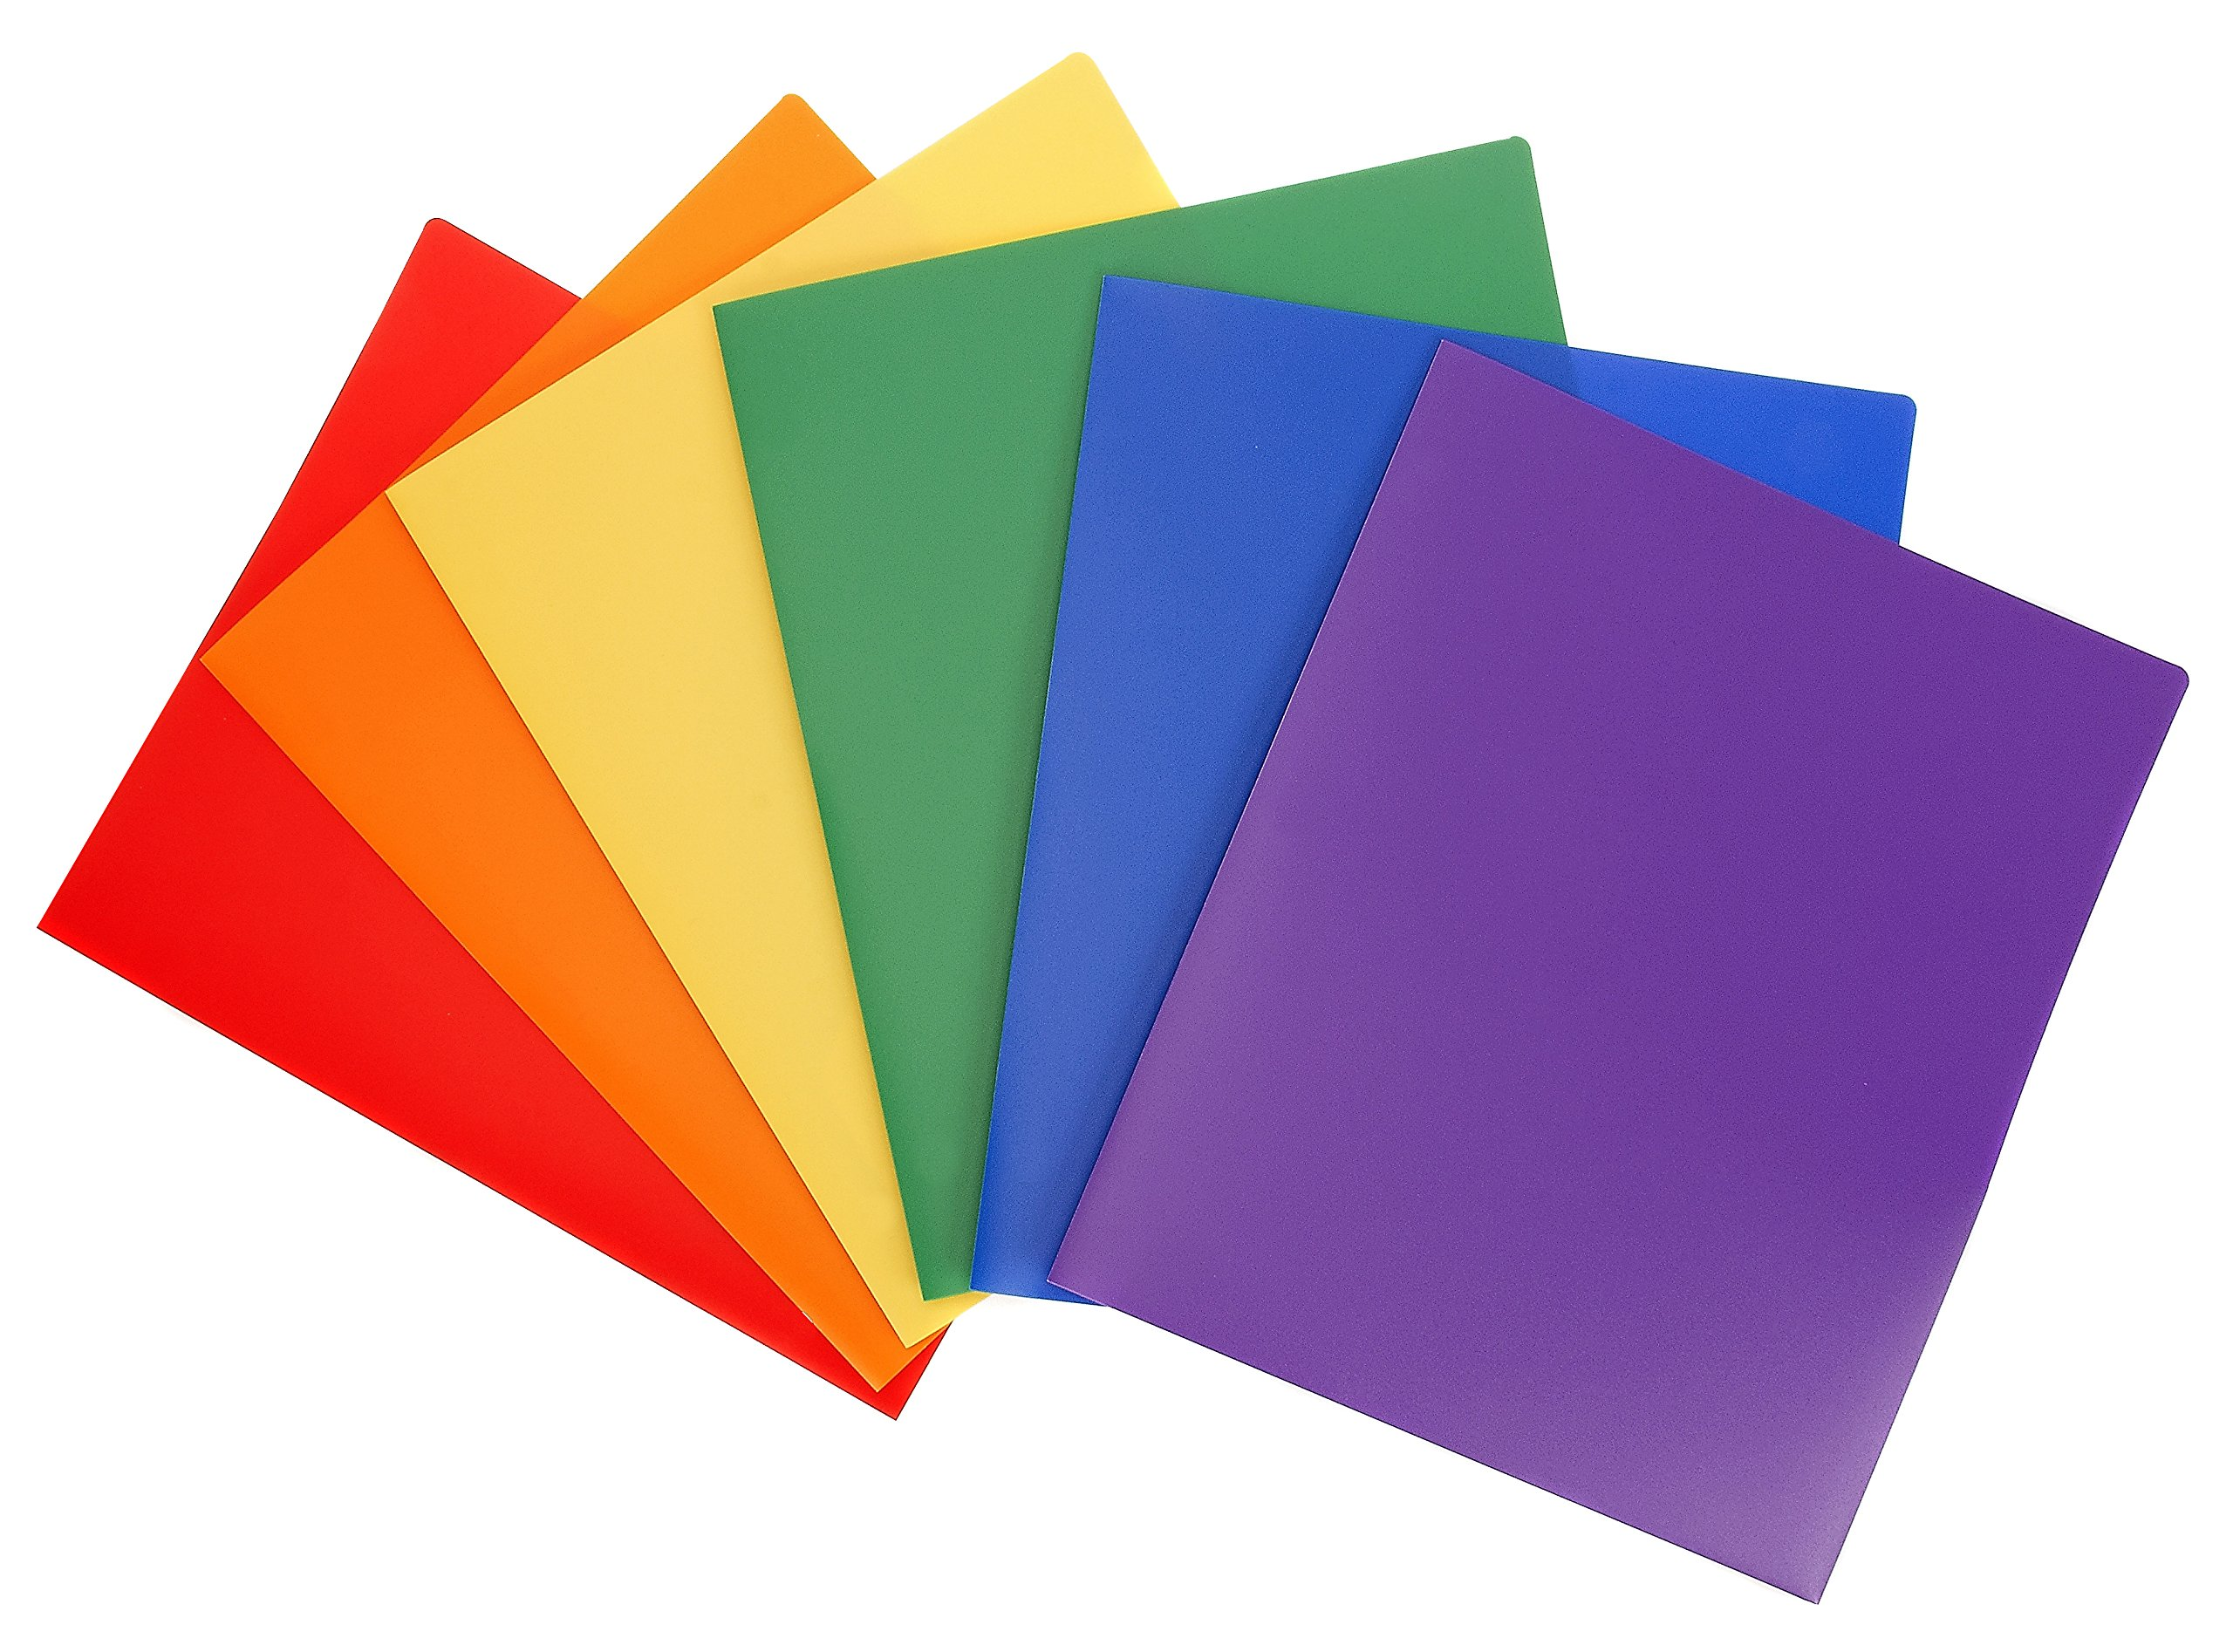 STEMSFX Heavy Duty Plastic 2 Pocket Folder (Pack of 6 Folders Assorted Colors) For Letter Size Papers, Includes Business Card Slot by STEMSFX